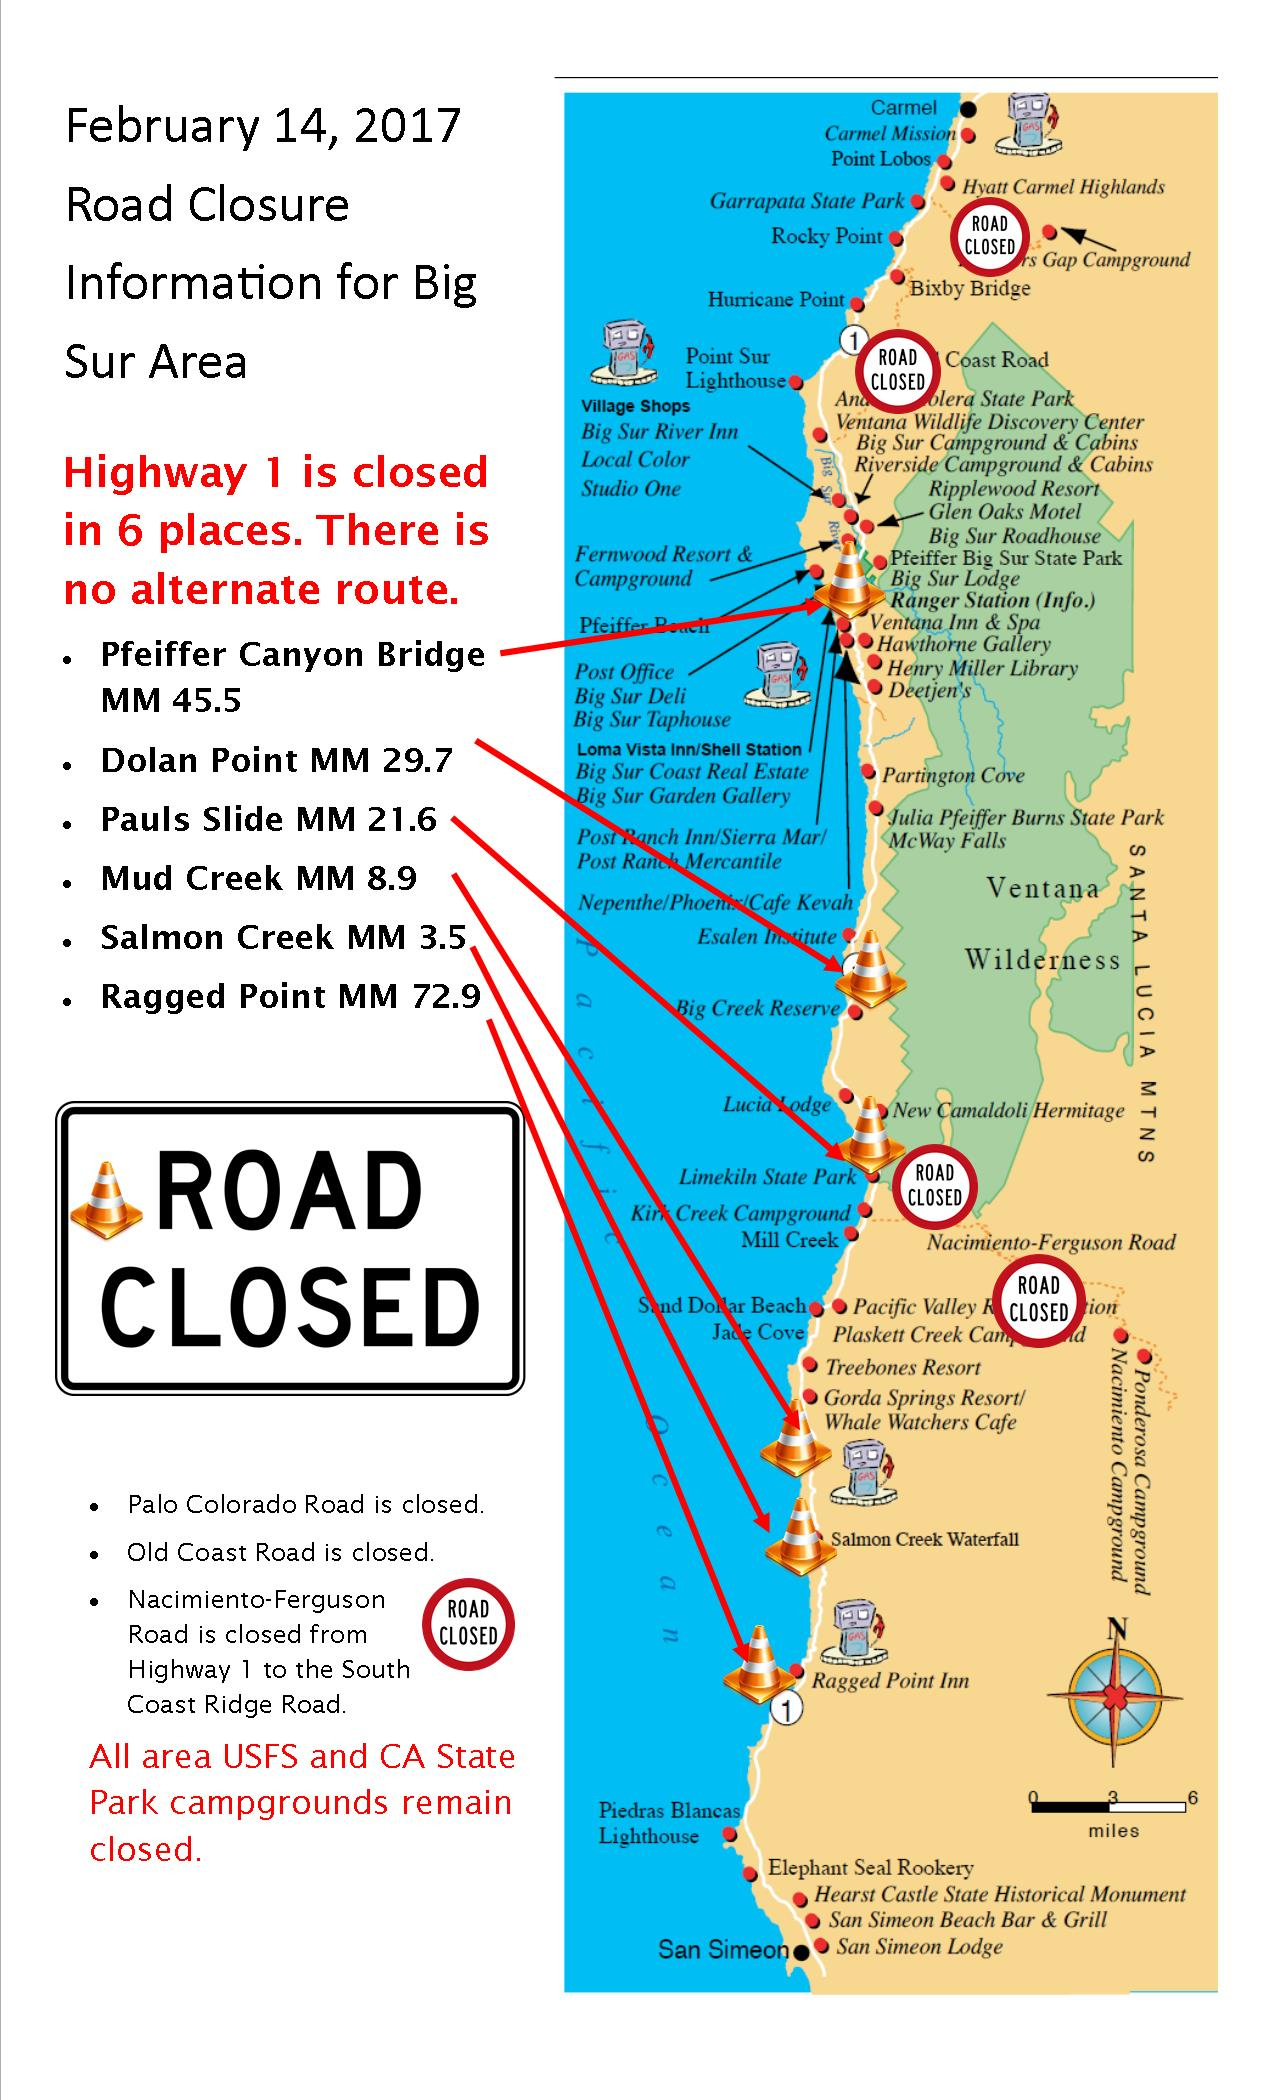 Visual Guide To Road Closures In Big Sur | Big Sur California - California Road Closures Map